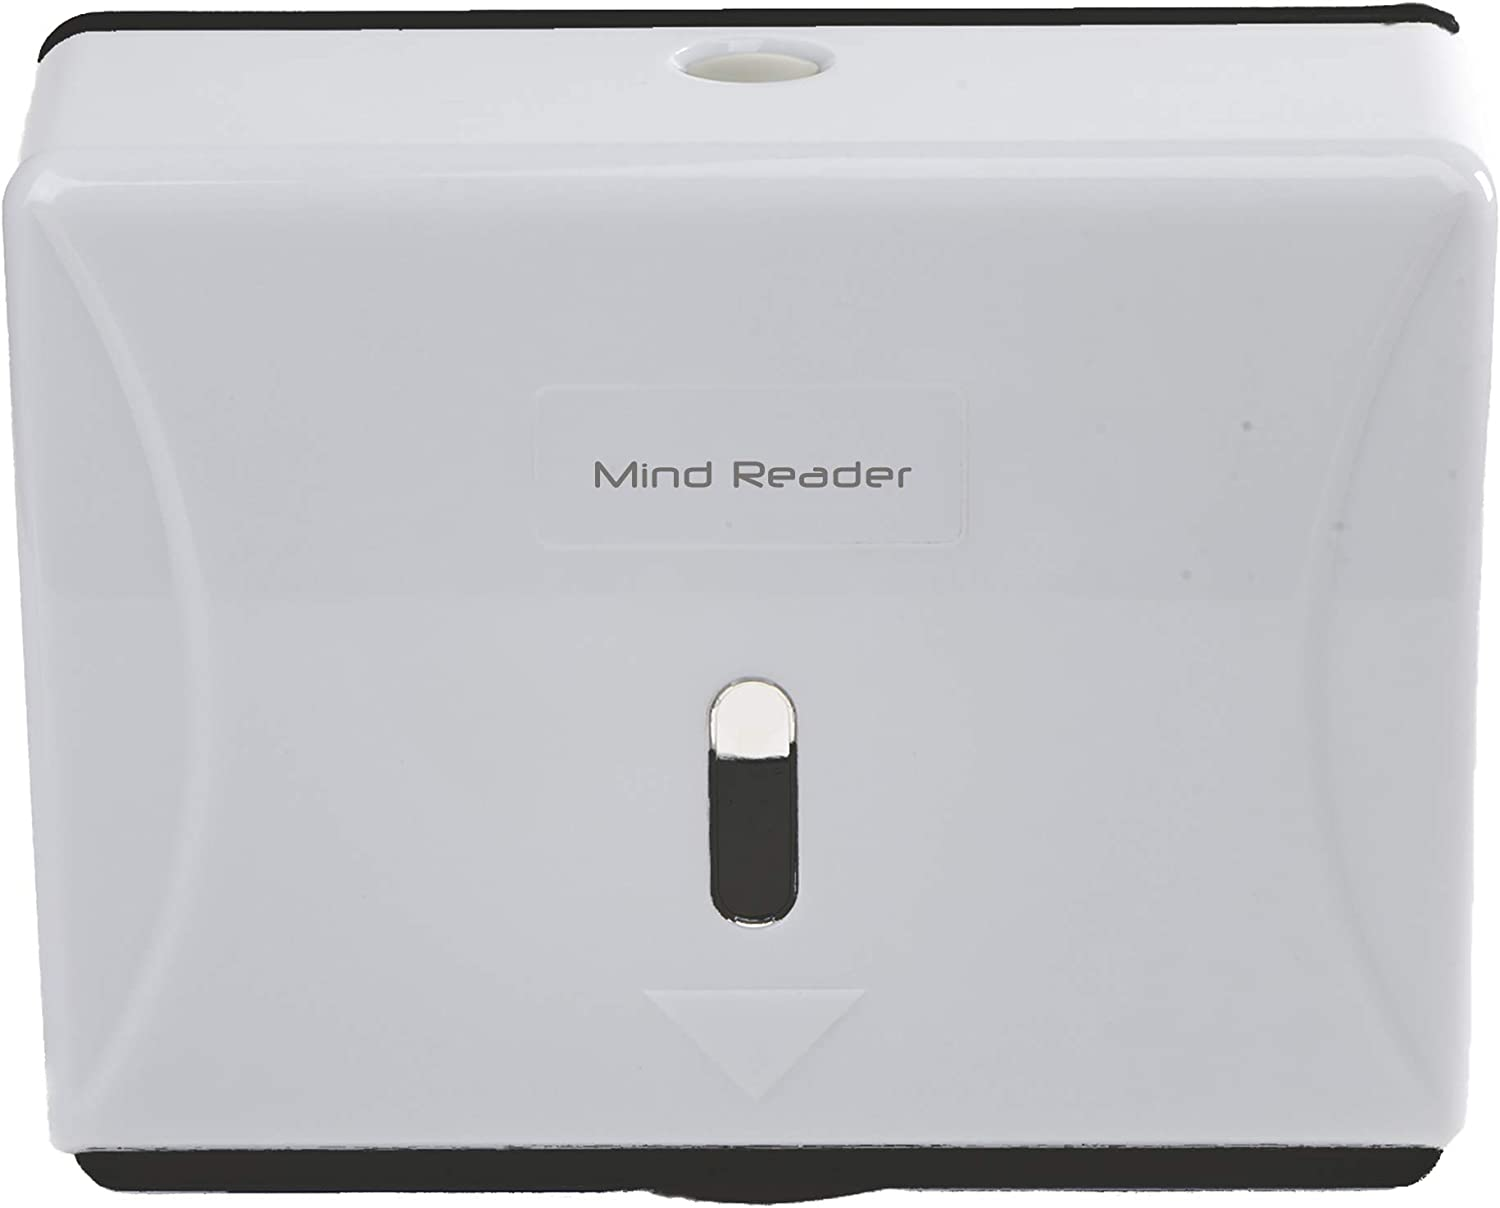 Mind Reader Multi-Fold Paper Towel Dispenser, Paper Towel Holder, 3.75 in. L x 10.5 in. W x 14 in. H